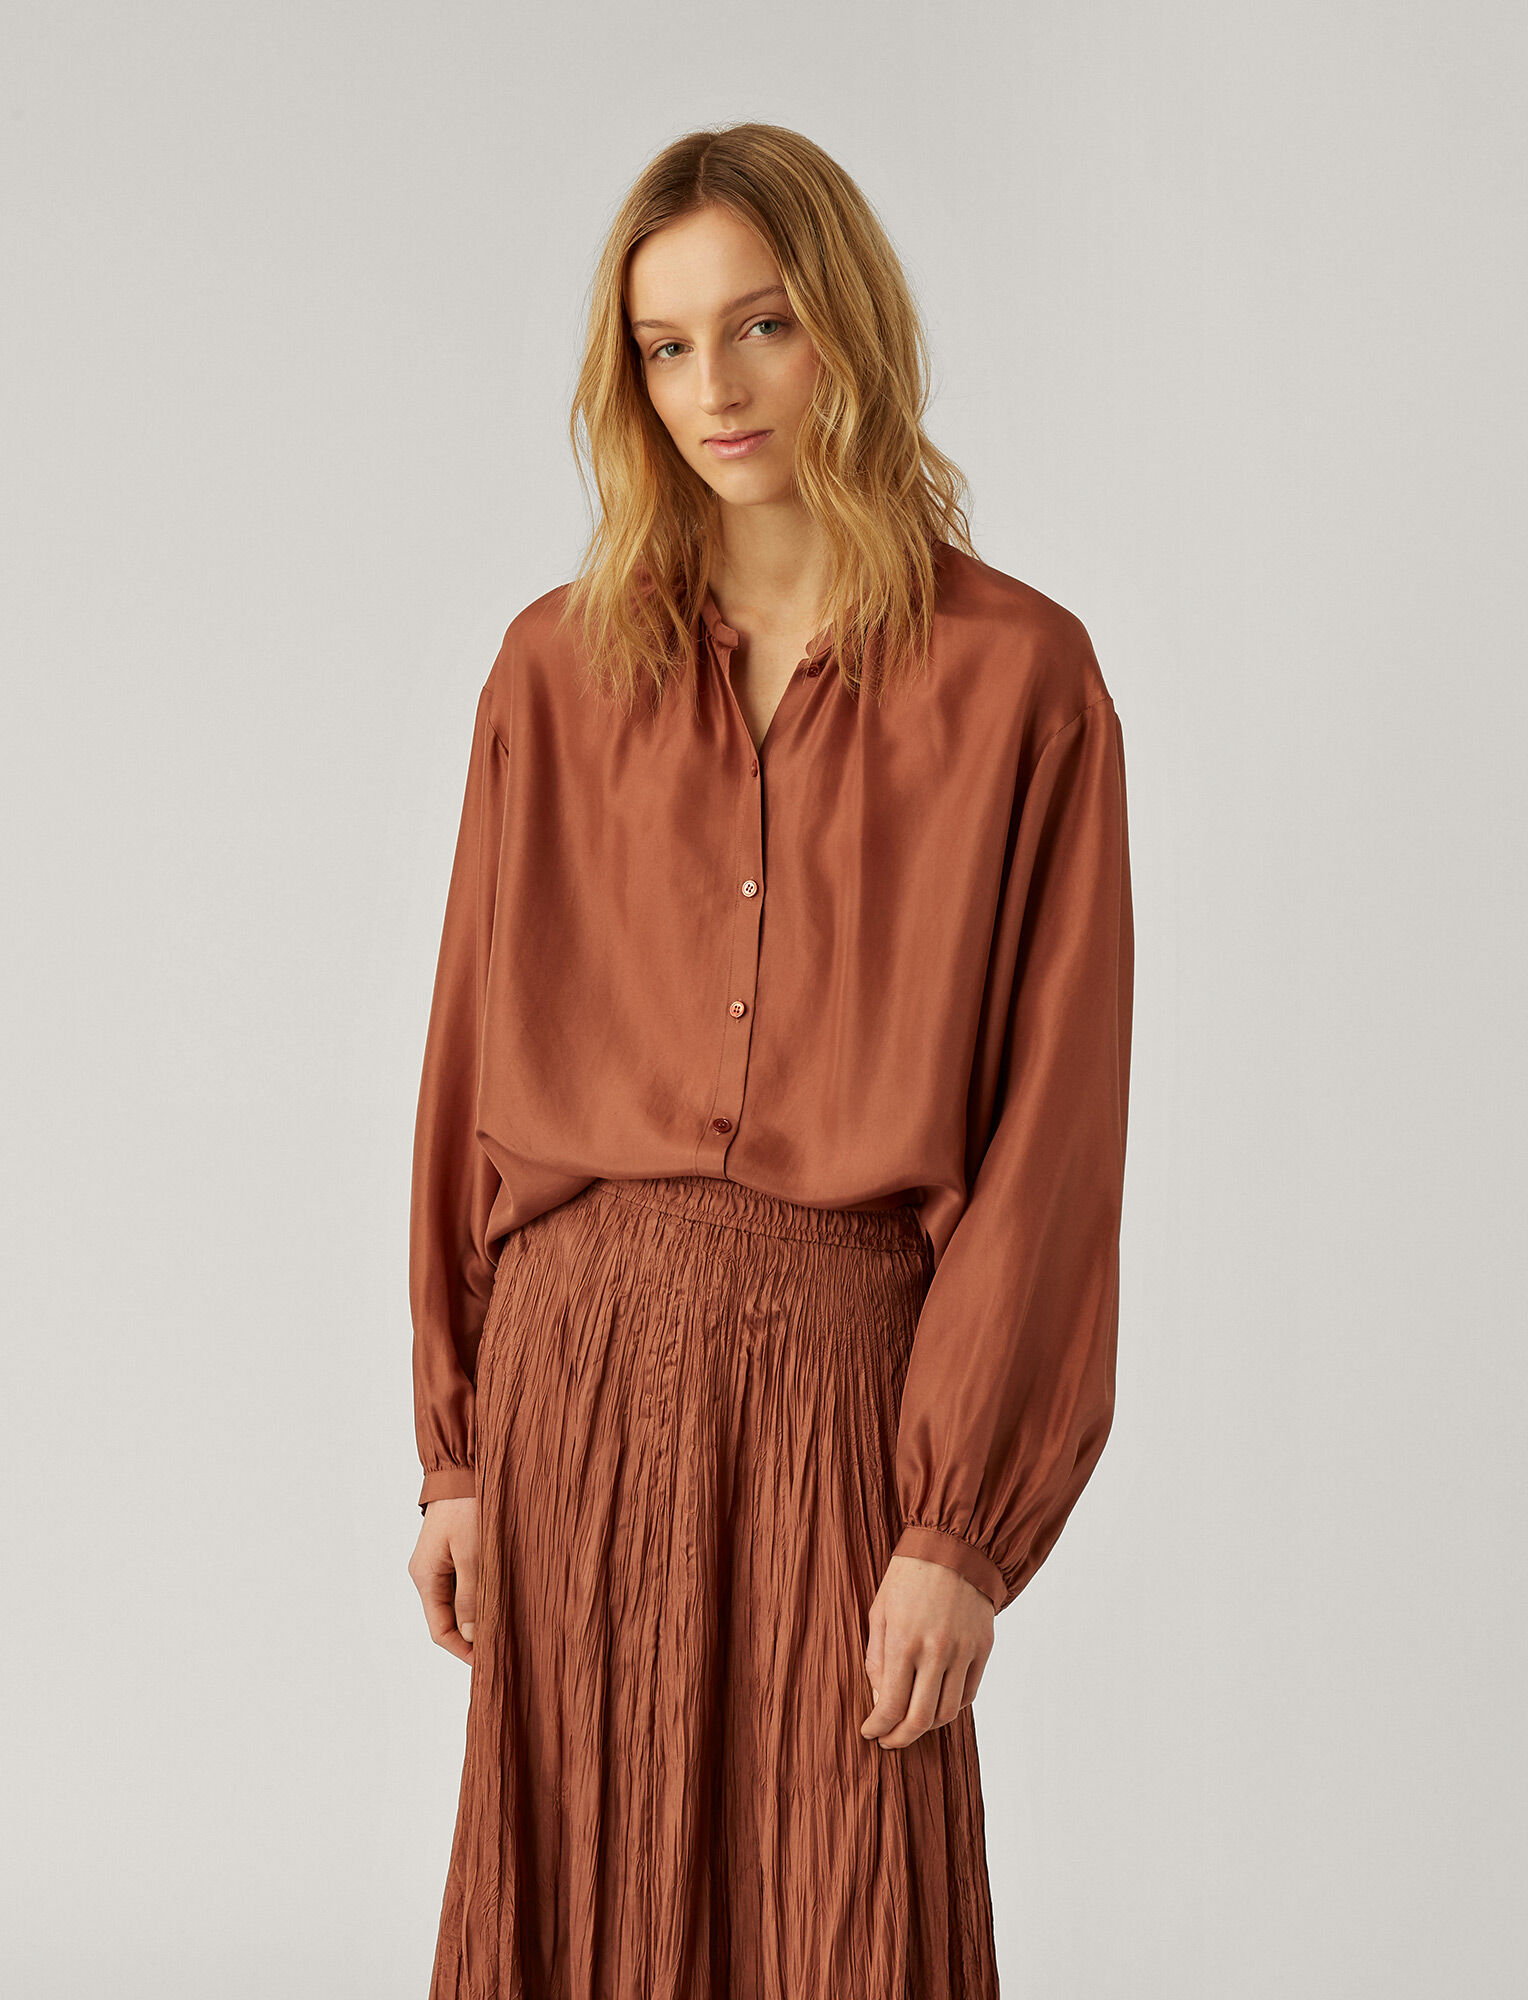 Joseph, Blouse Bowell en soie Habotai, in DUSTY ROSE